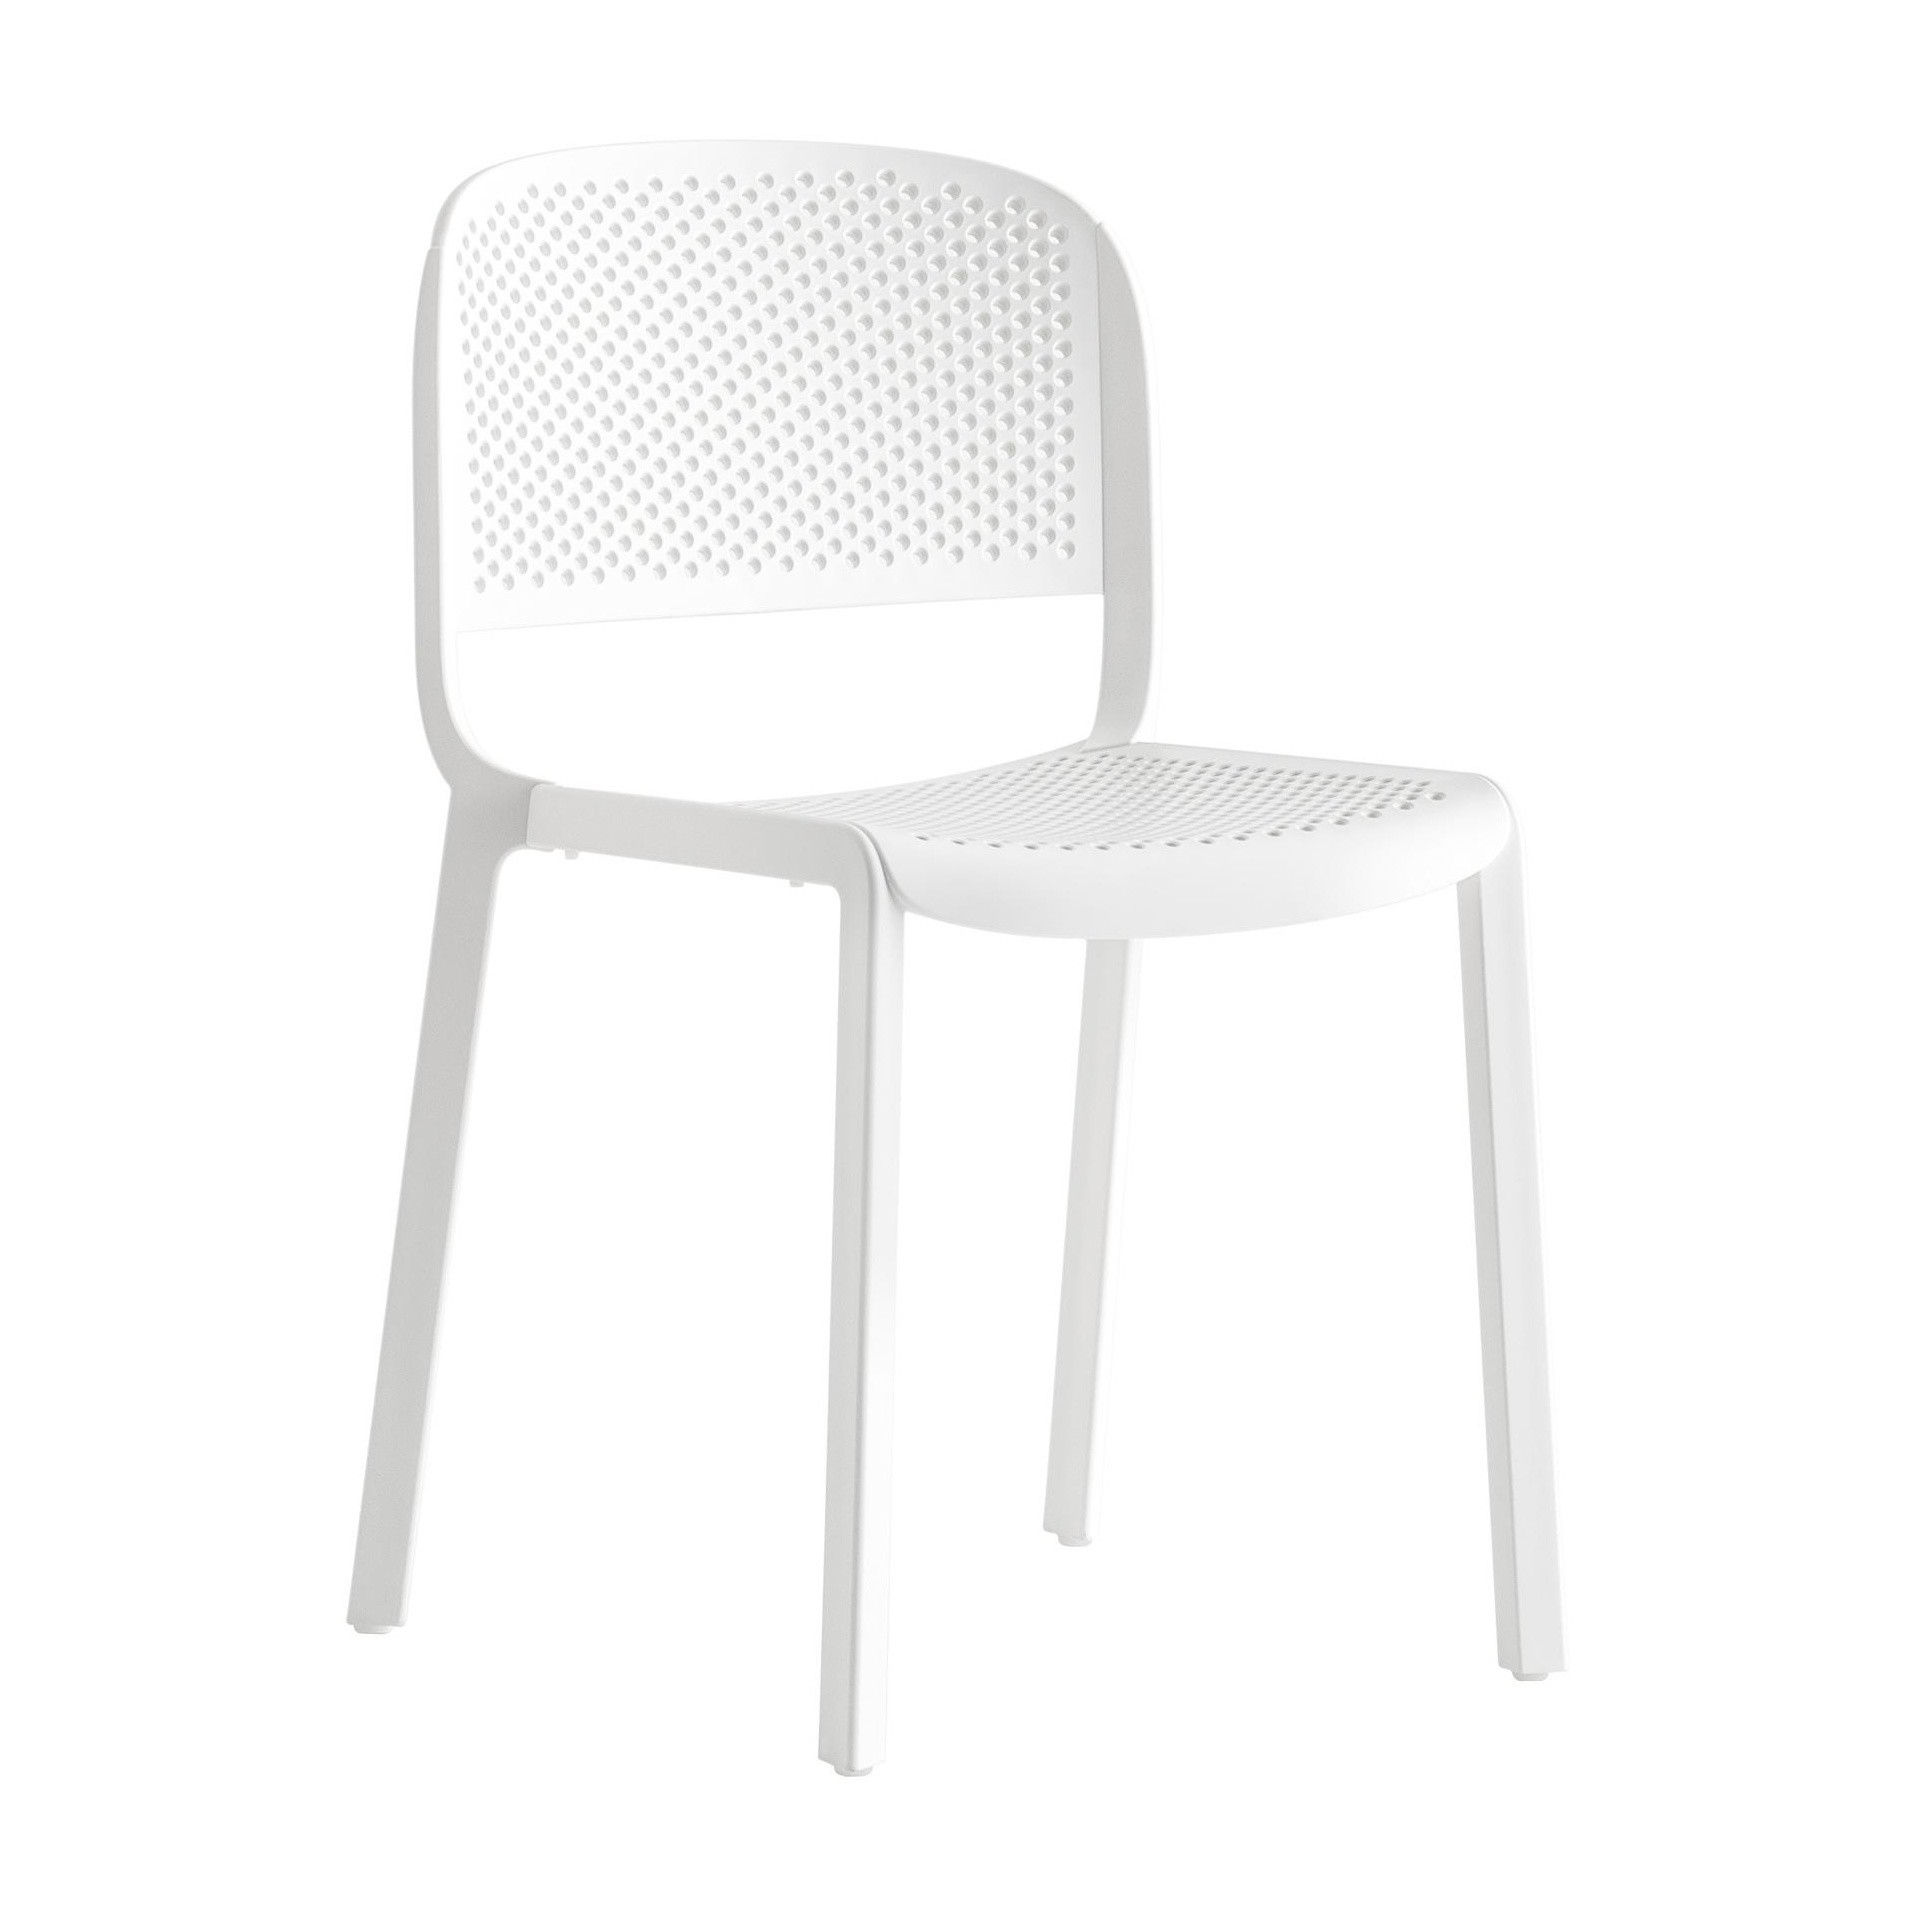 pedrali dome 261 garden chair ambientedirect rh ambientedirect com